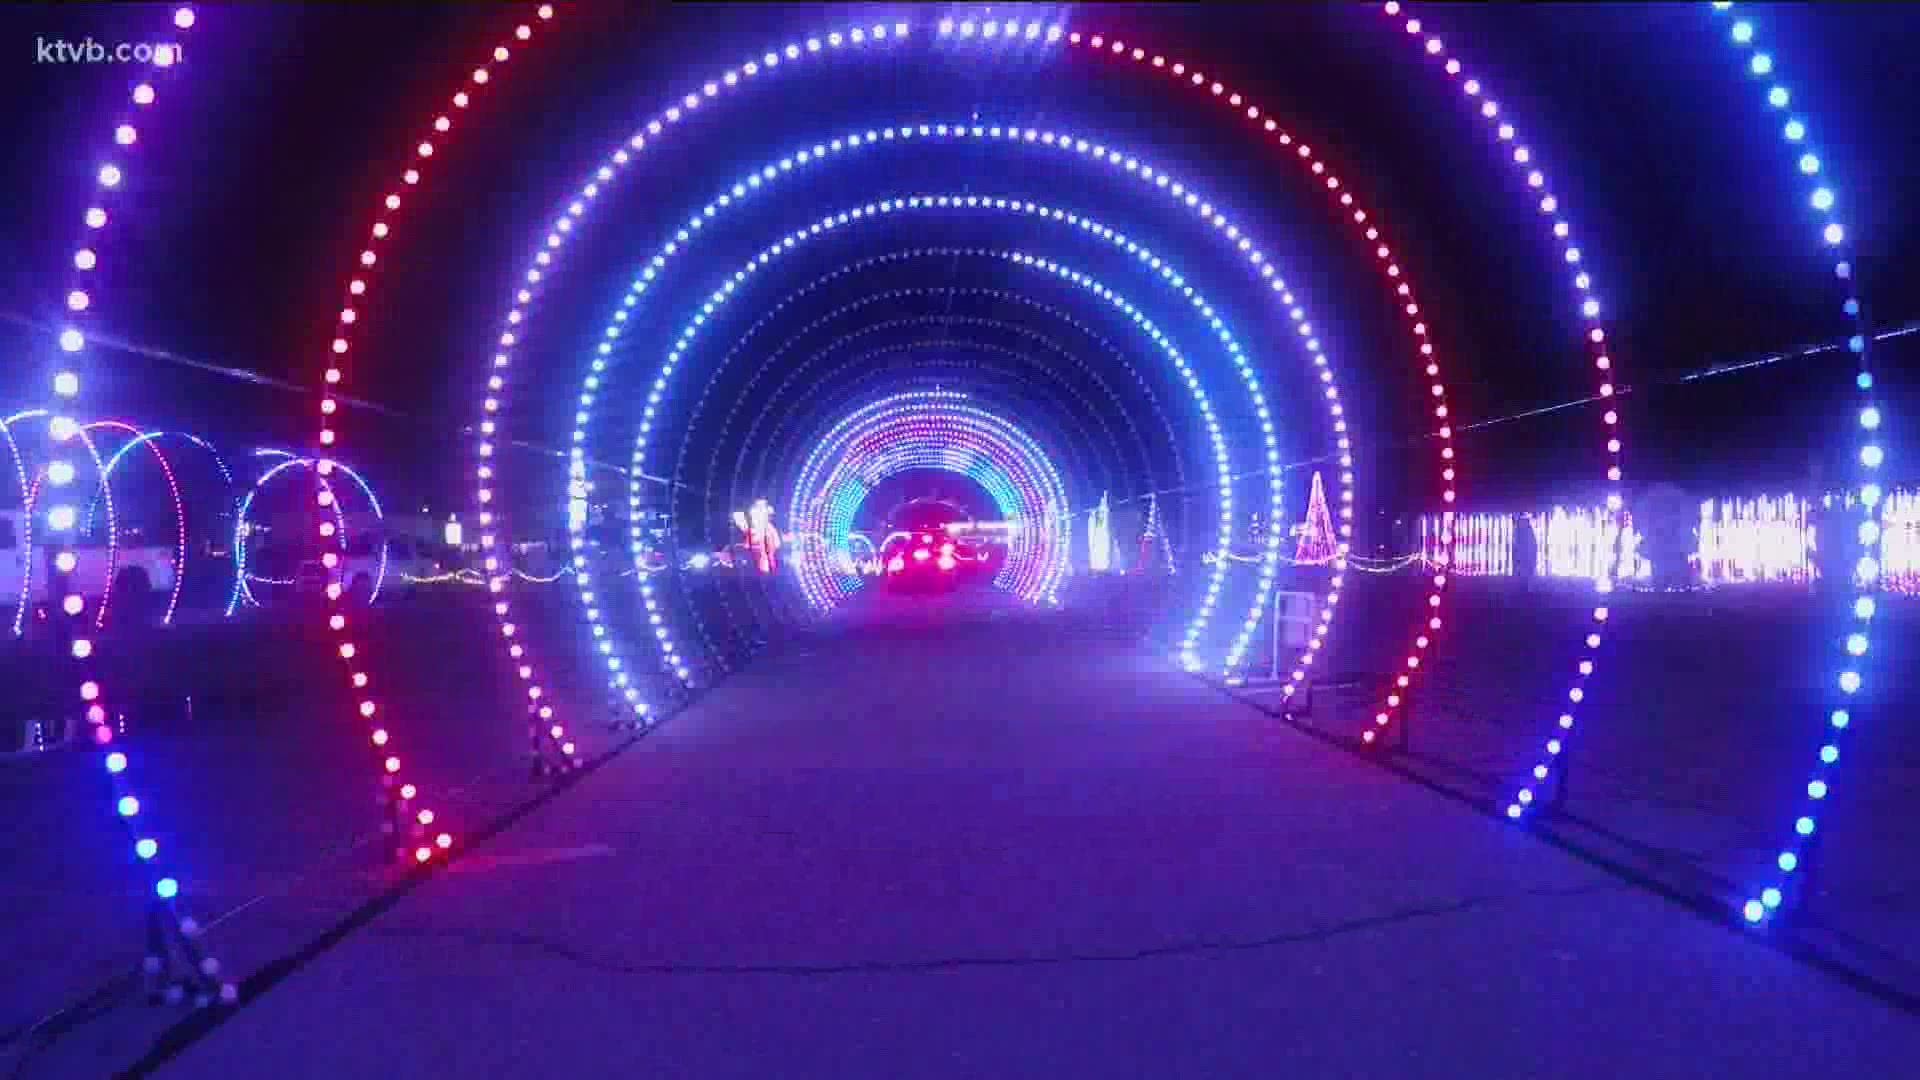 Over 1 million lights transform Expo Idaho for Christmas in Color